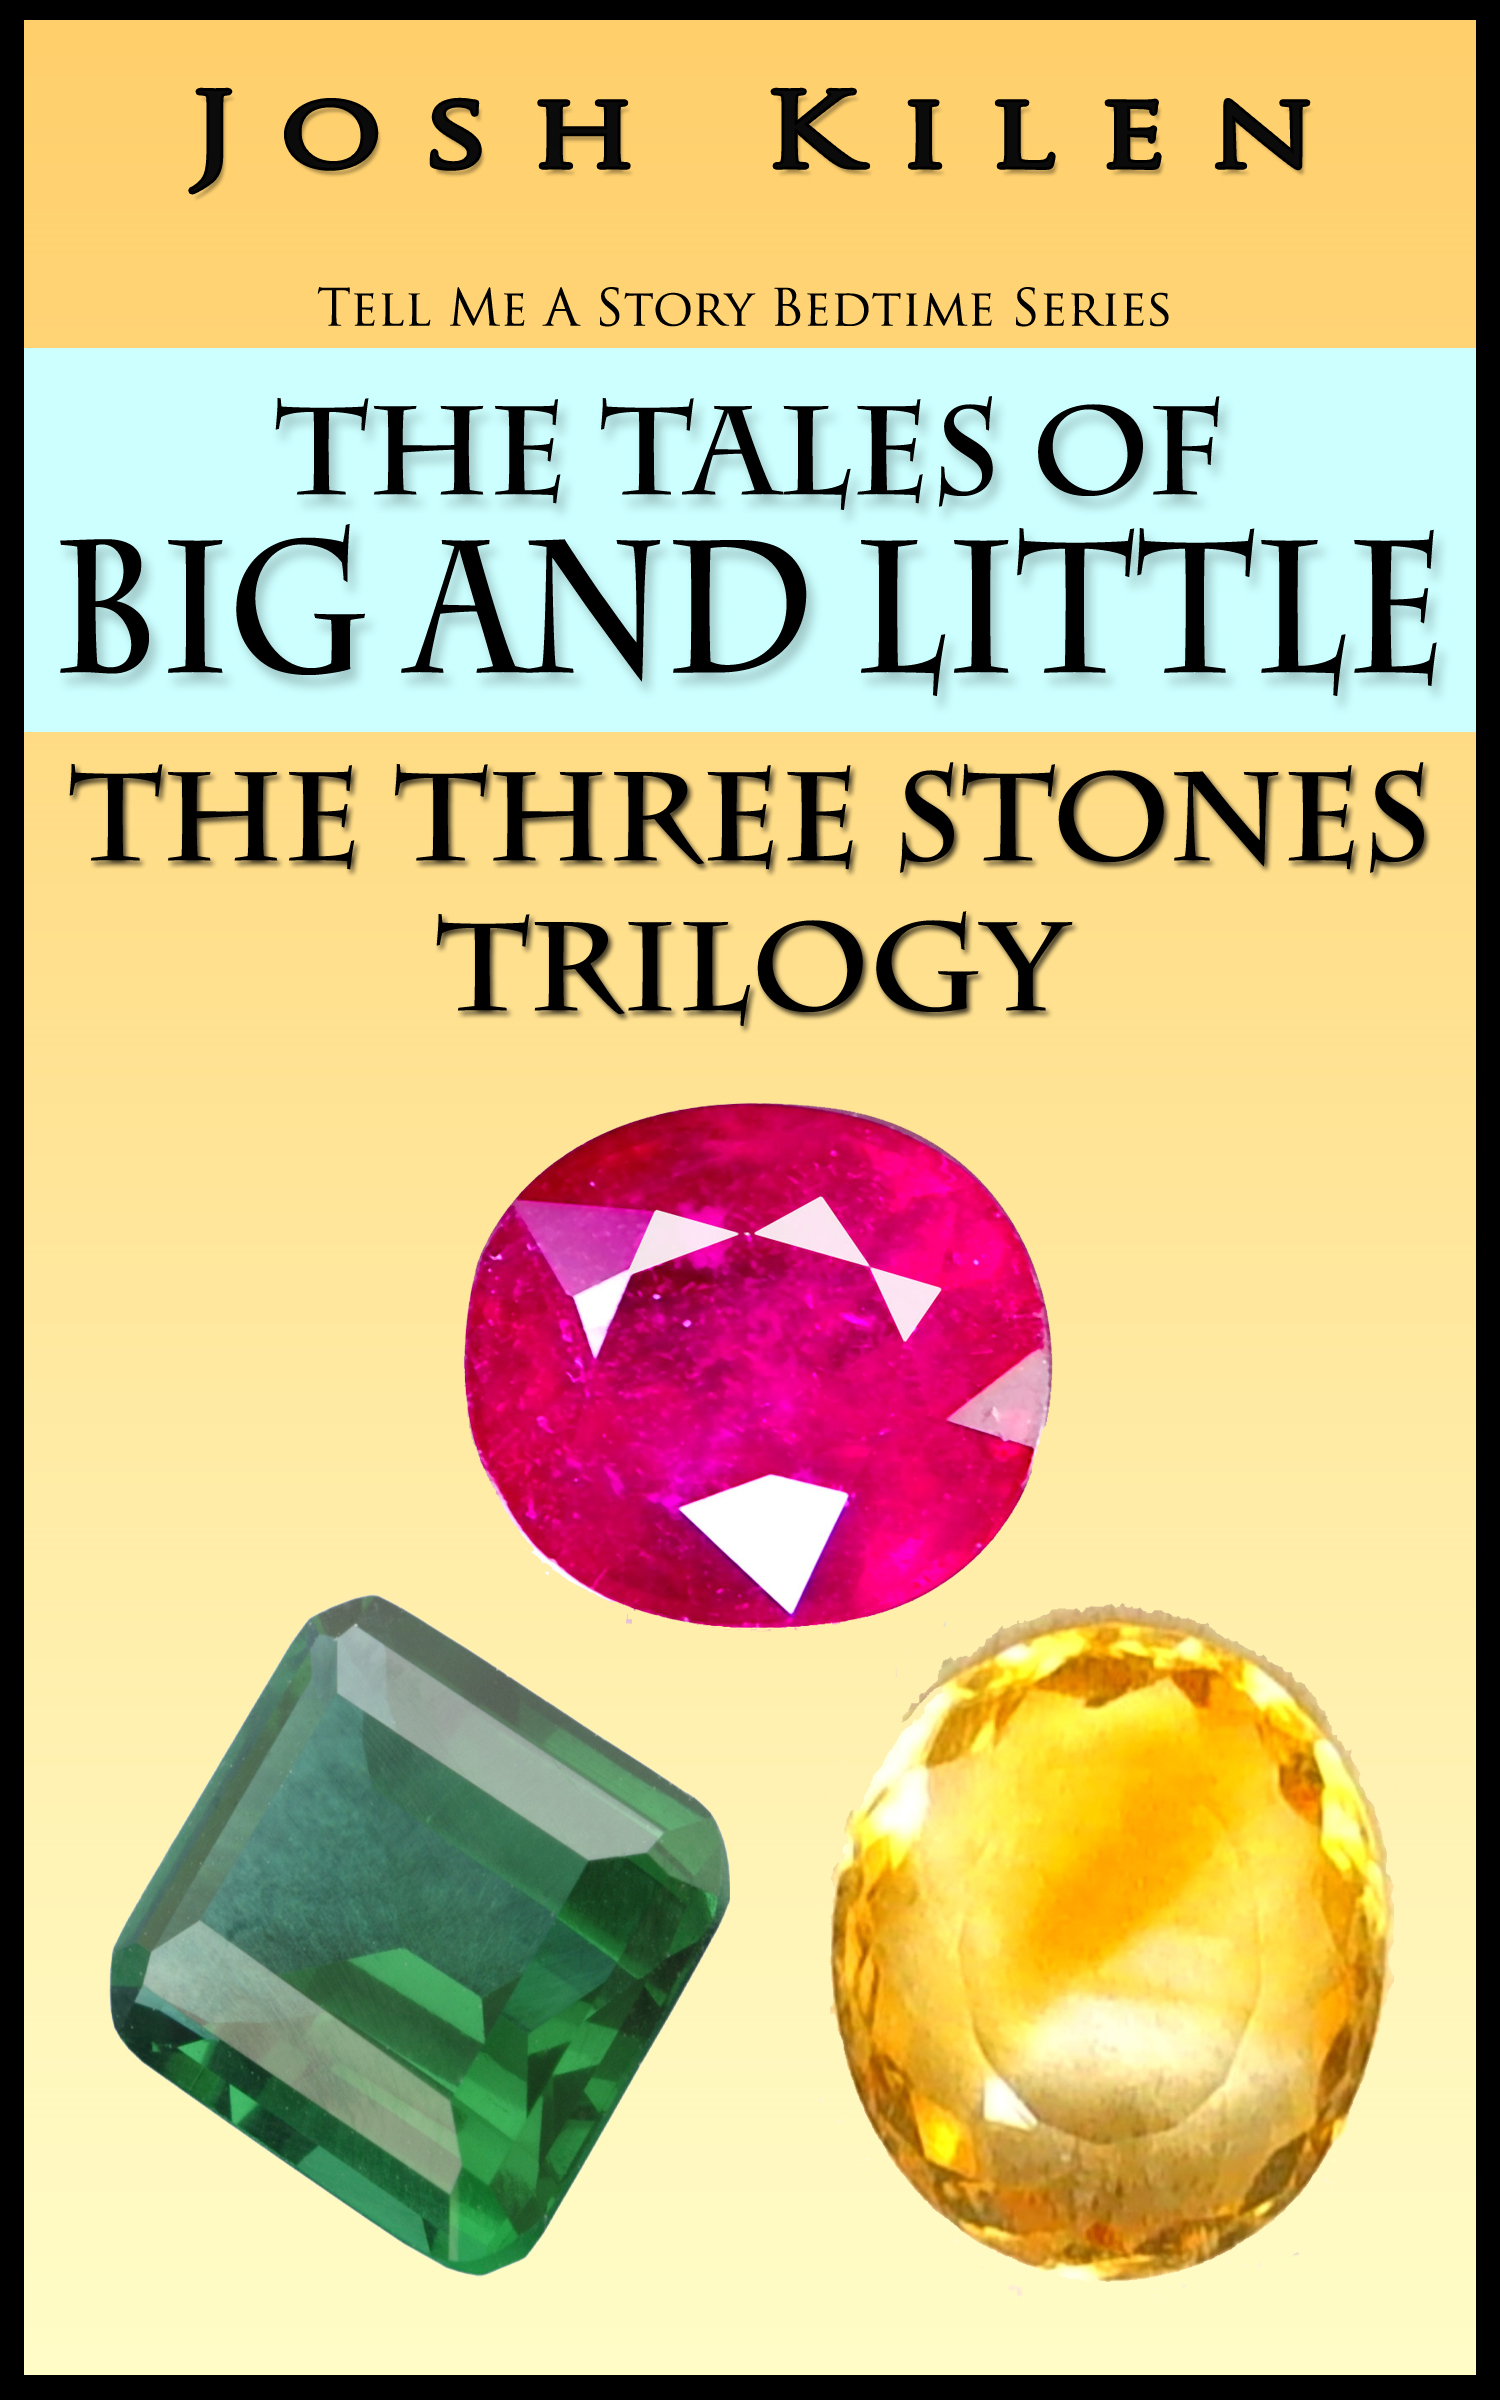 The Tales of Big and Little - The Three Stones Trilogy